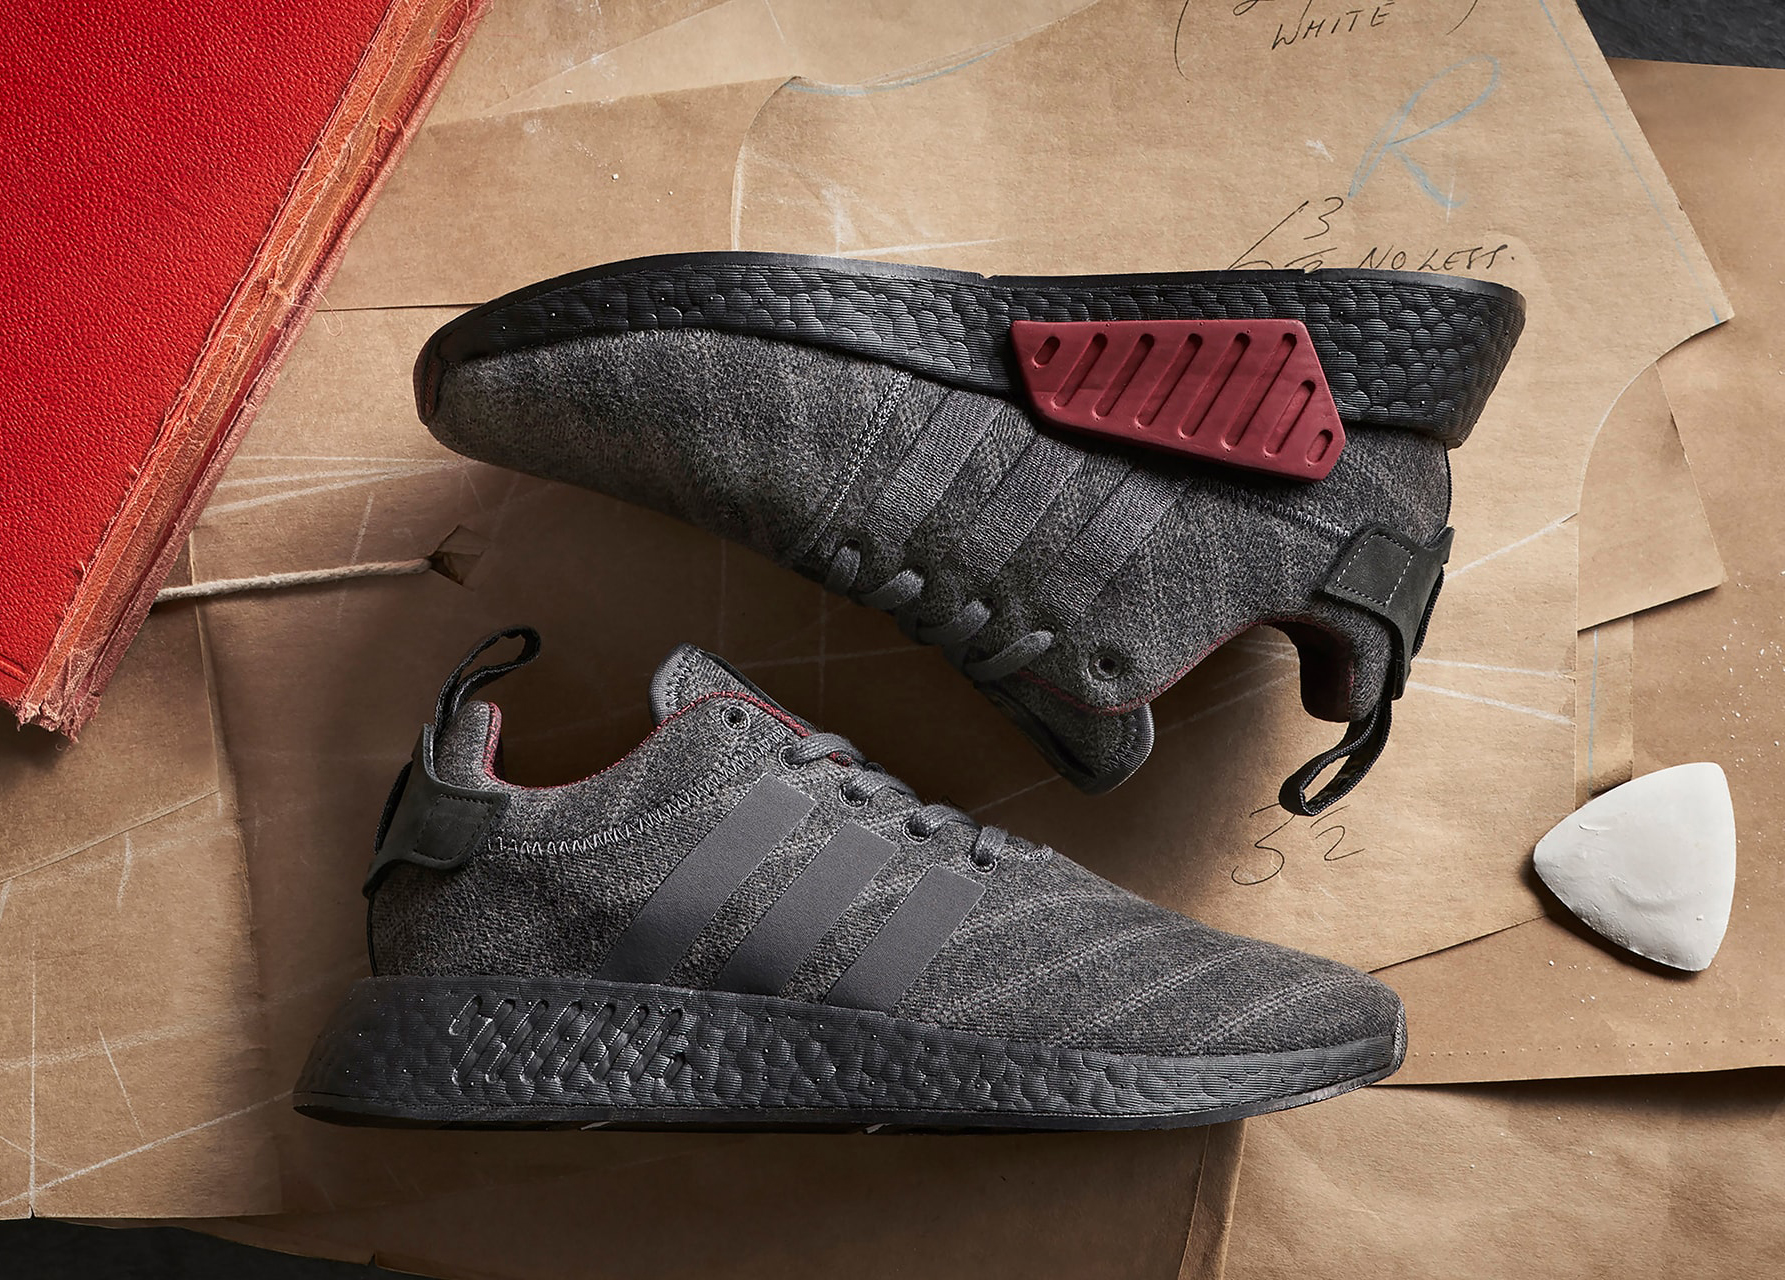 Adidas x Henry Poole NMD sneakers